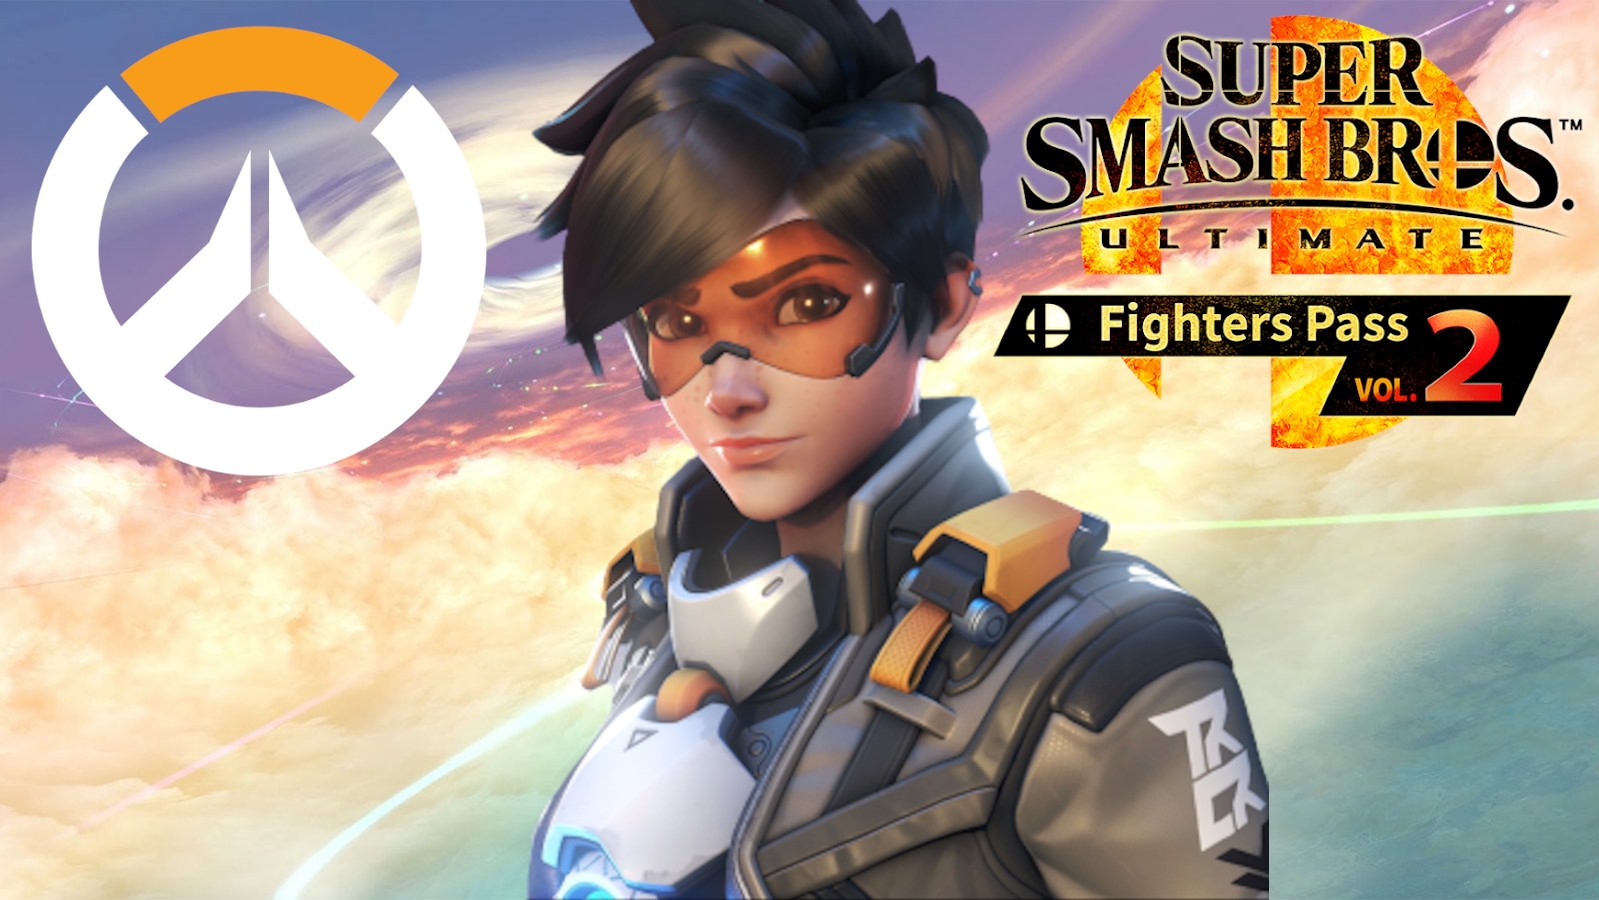 Tracer in Smash Ultimate's fighters pass volume 2